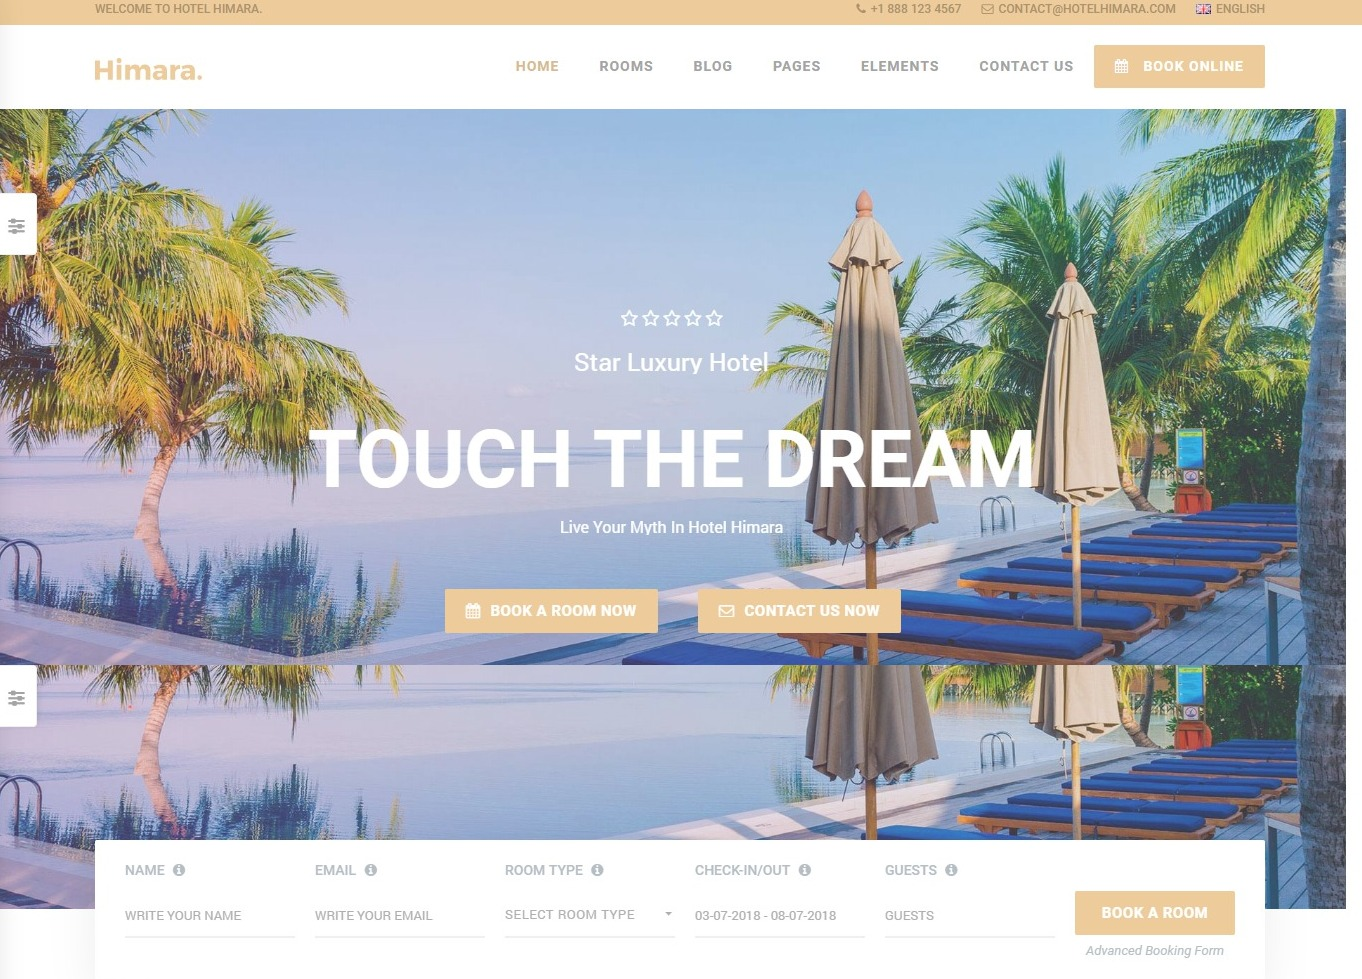 hotel-himara-hotel-website-template